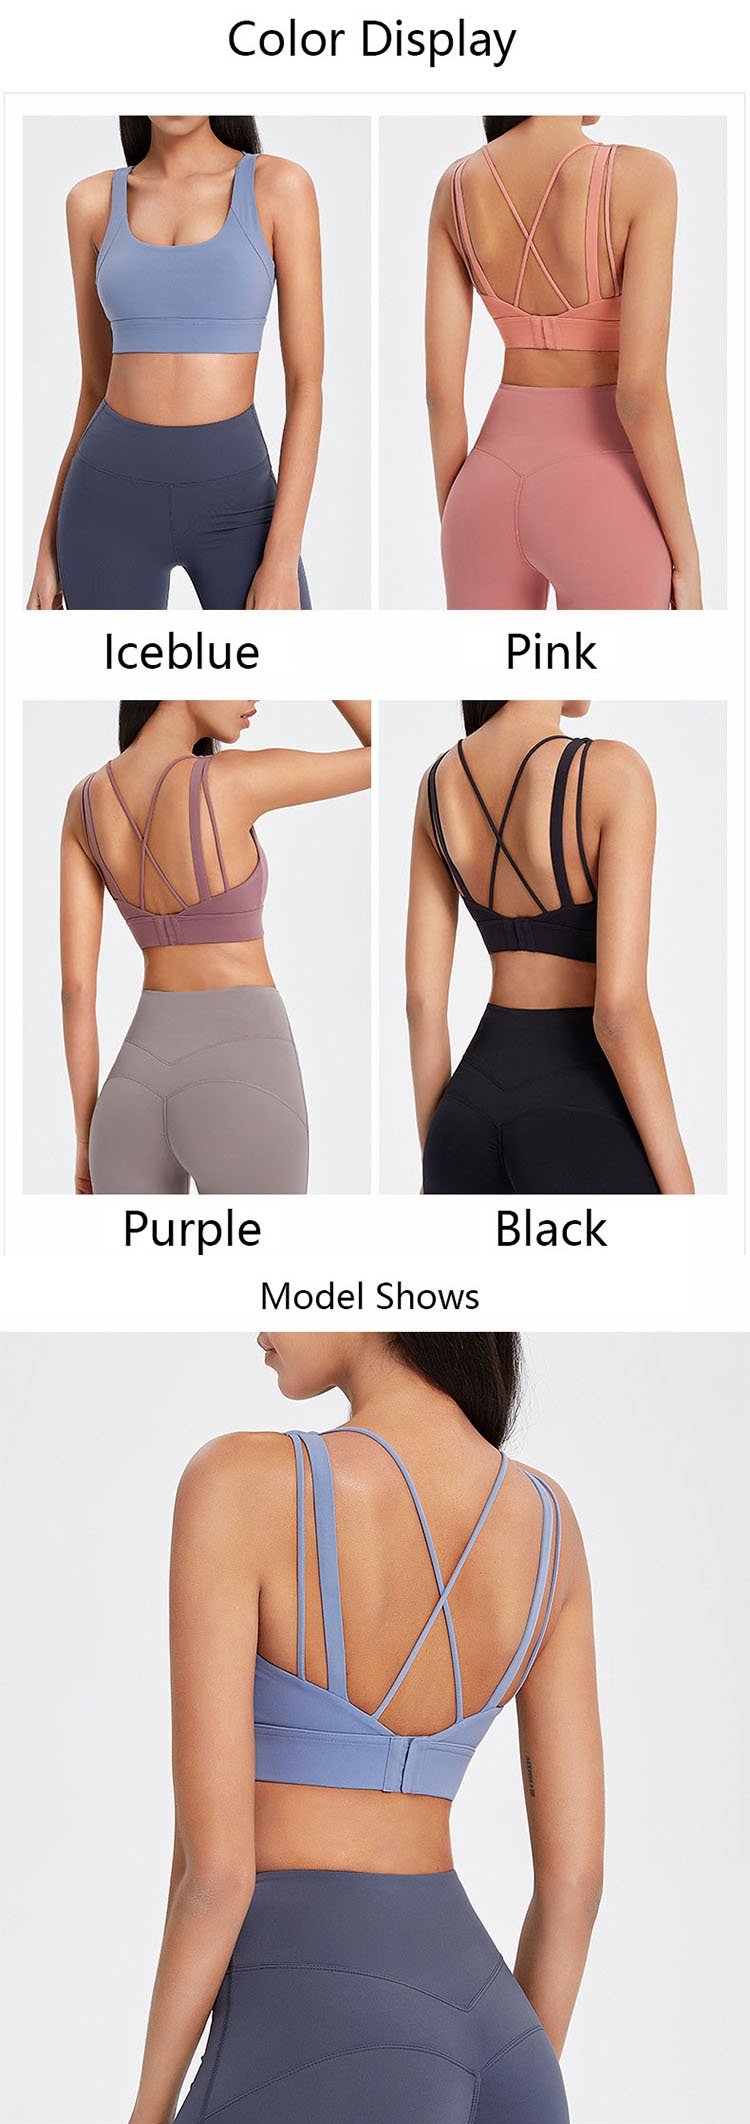 U-shaped neckline reveals the sexy collarbone, making the neck more slender.